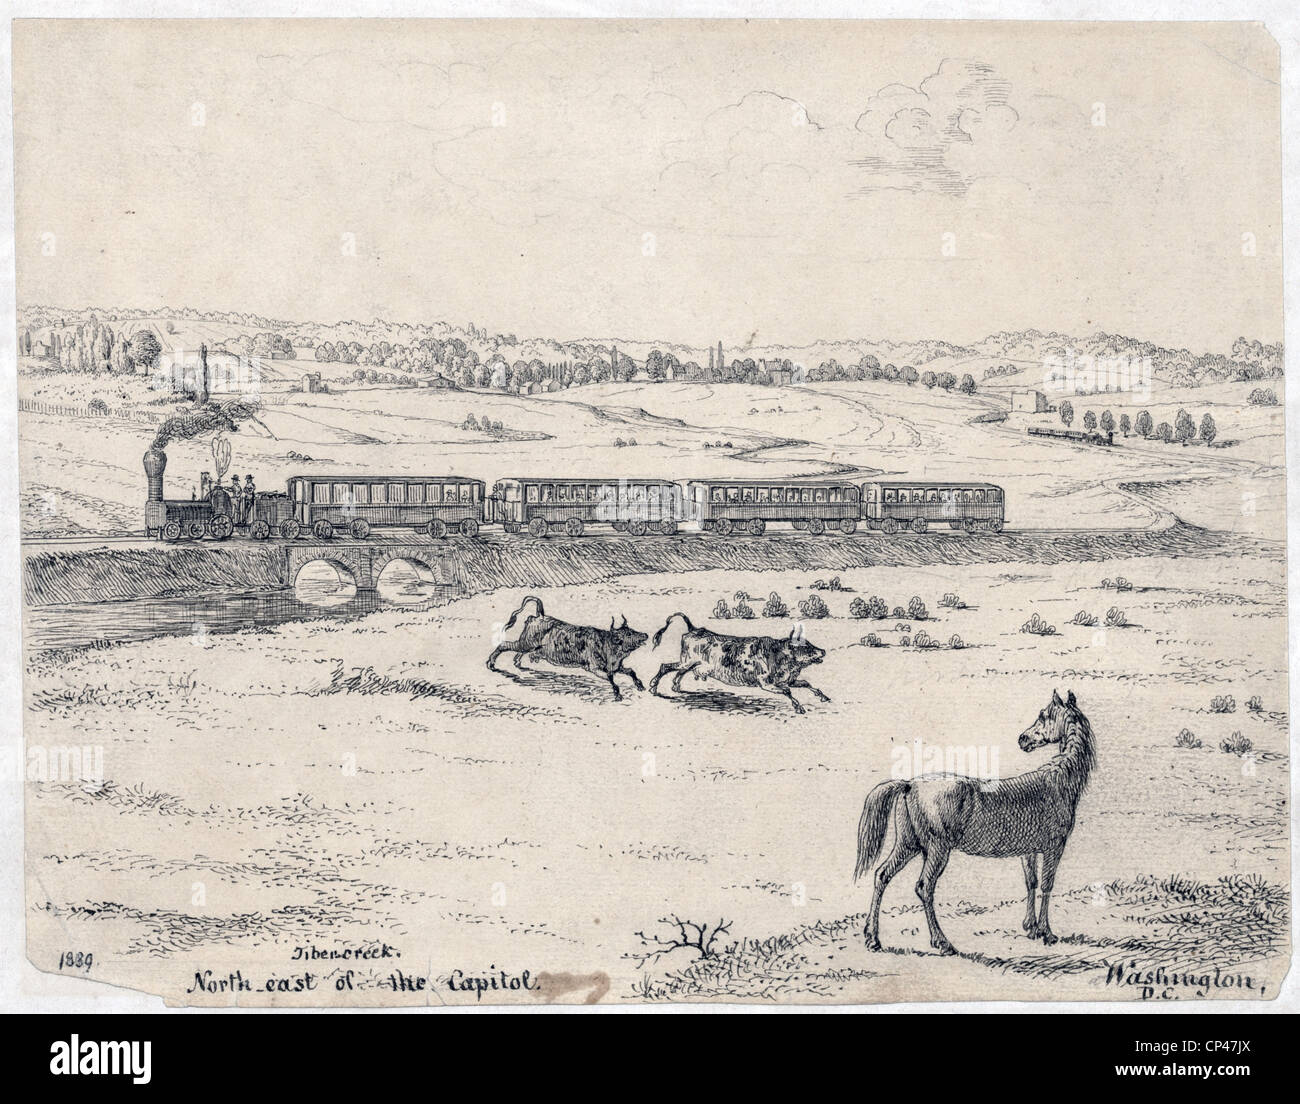 A passenger train crossing Tiber Creek, northeast of  Washington, DC. 1839 - Stock Image